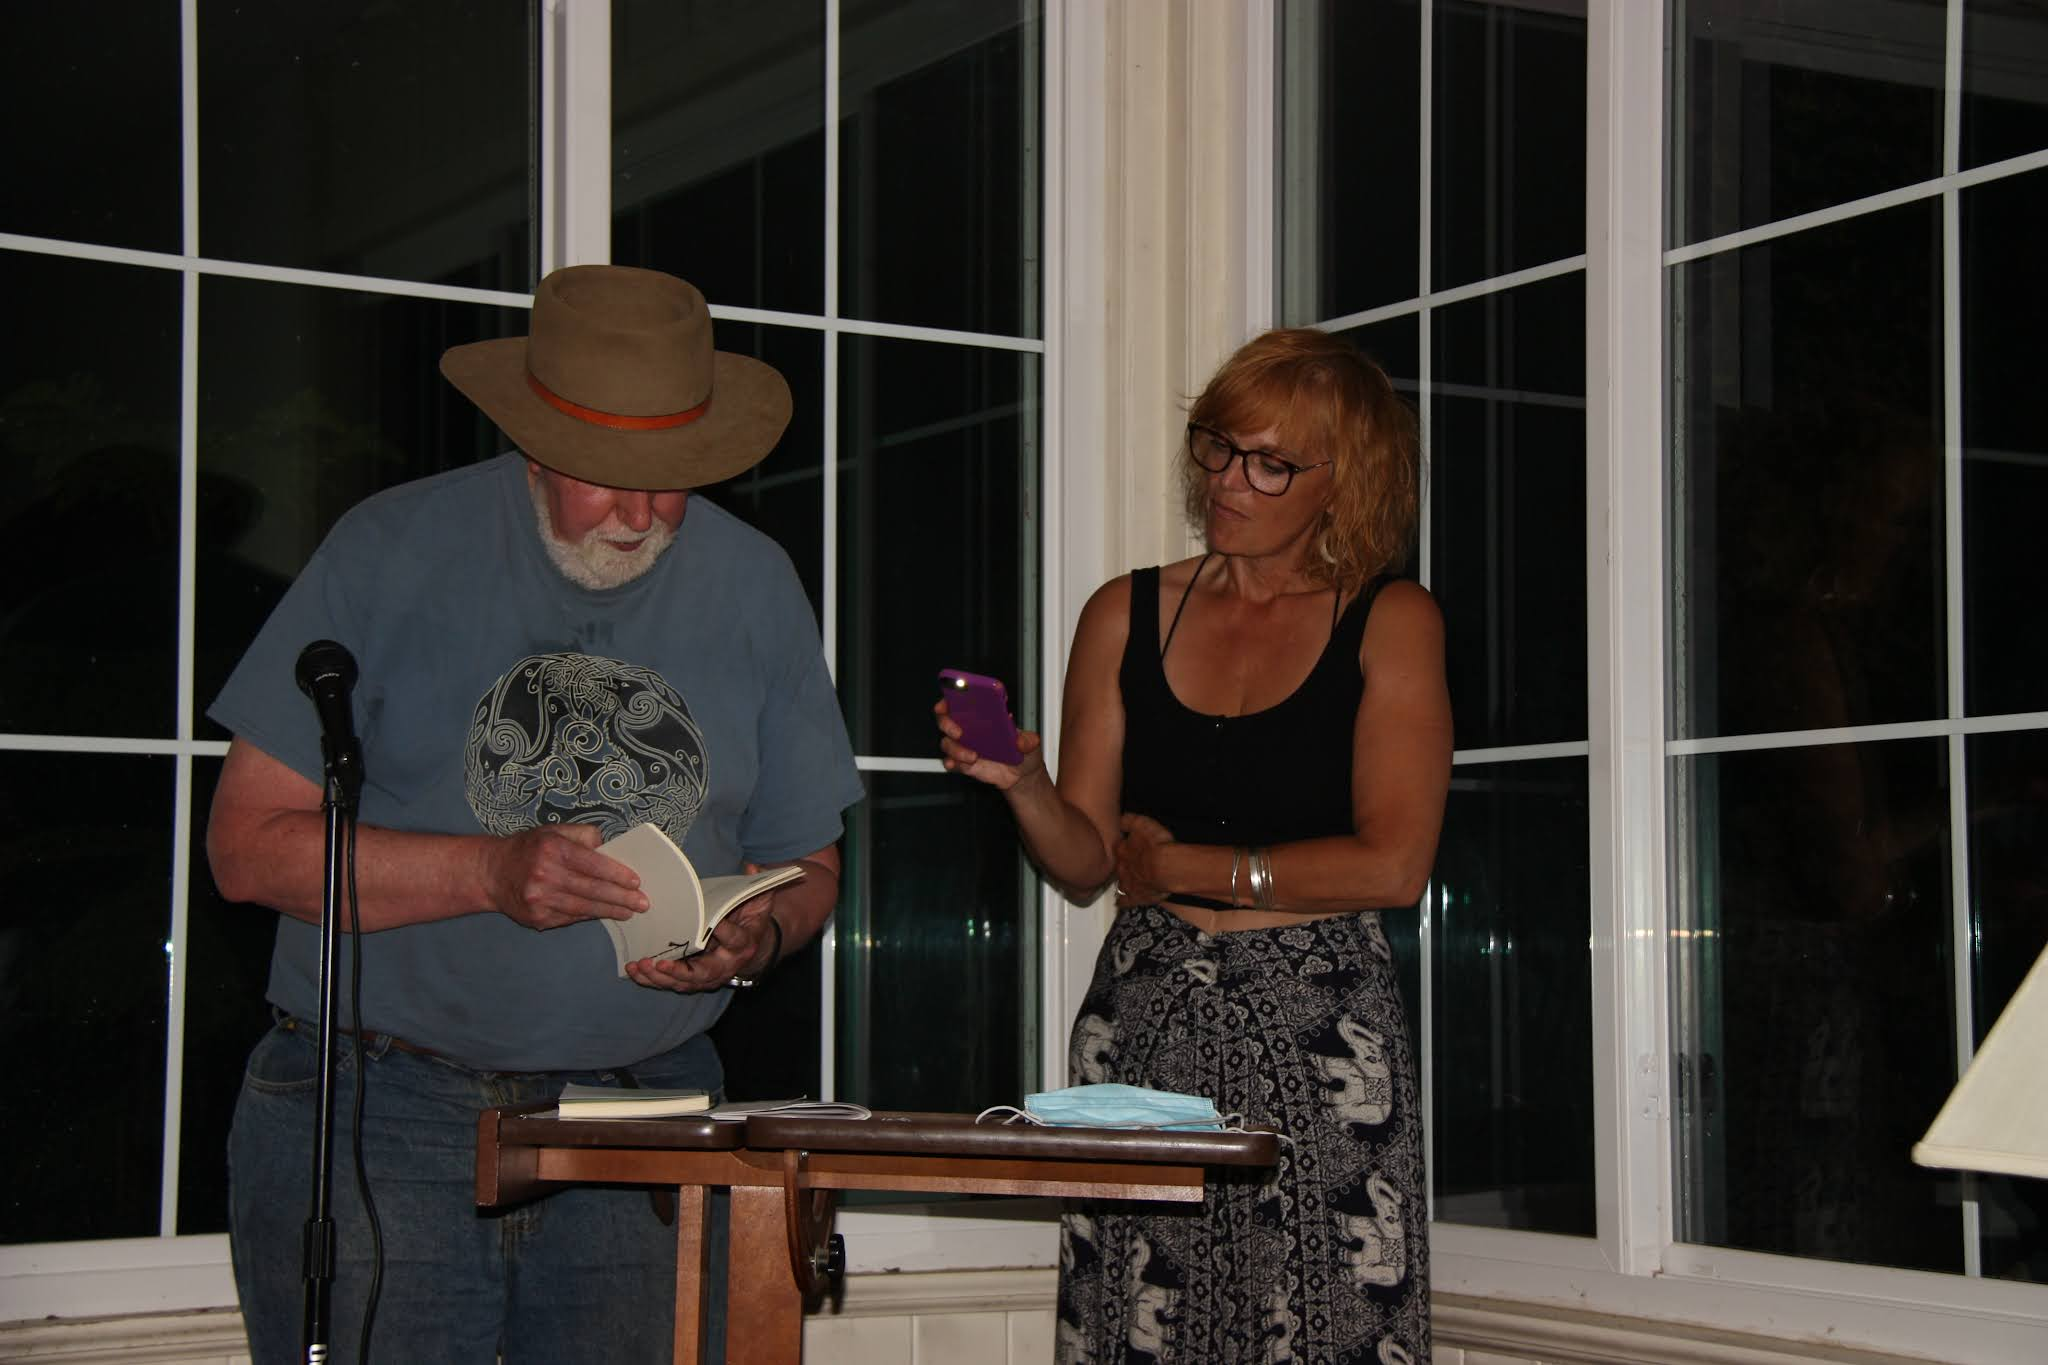 Alan Casline reading at the Pine Hollow Arboretum